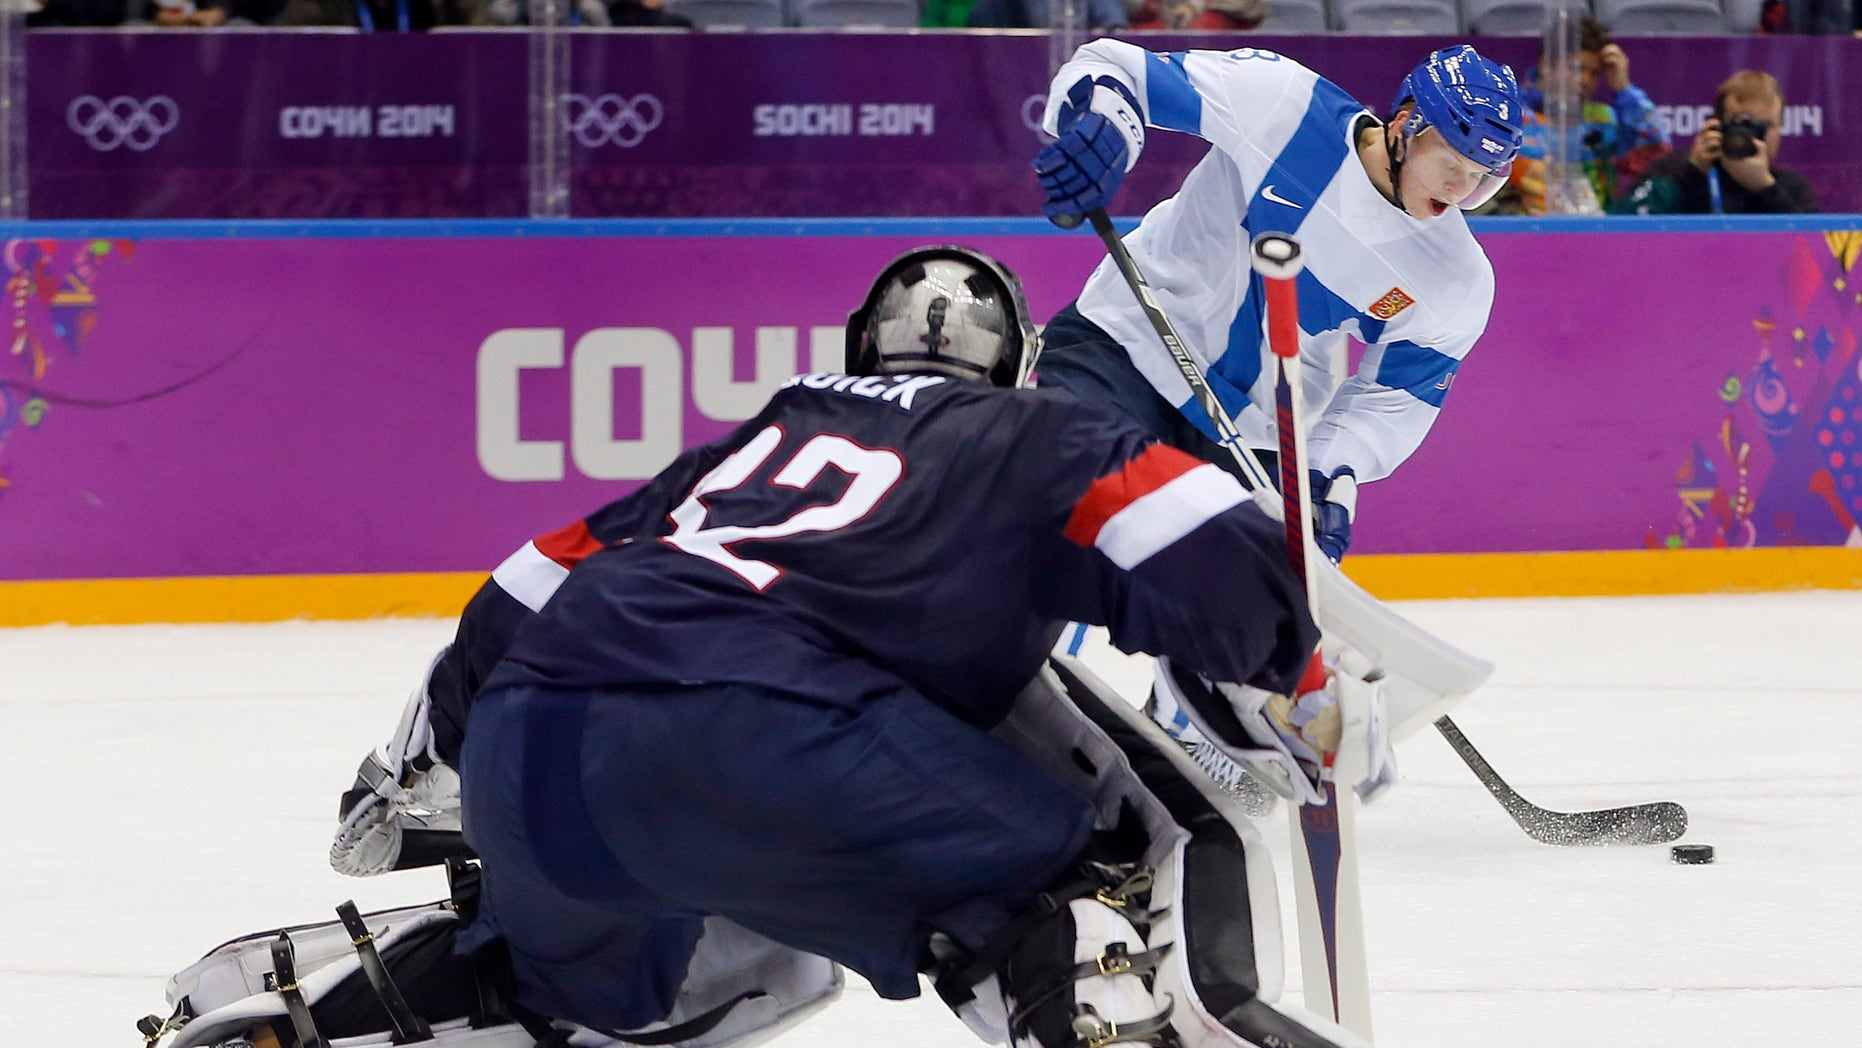 Feb. 22, 2014: Finland defenseman Olli Maatta shoots to score against USA goaltender Jonathan Quick during the third period of the men's bronze medal ice hockey game at the 2014 Winter Olympics in Sochi, Russia.